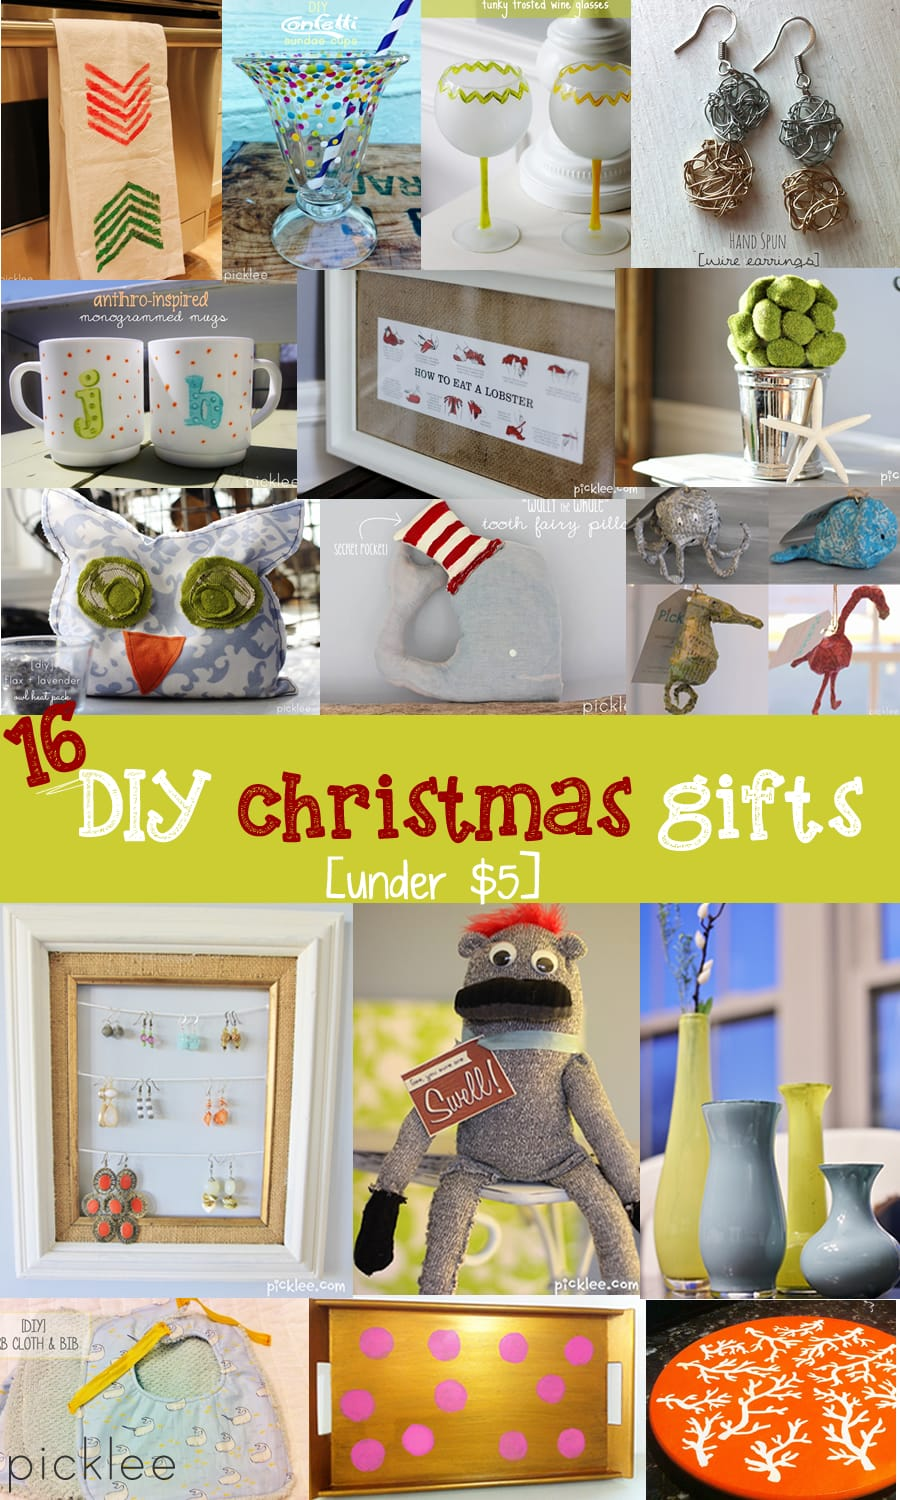 under 5 16 diy christmas gifts - Christmas Gifts Under 5 Dollars